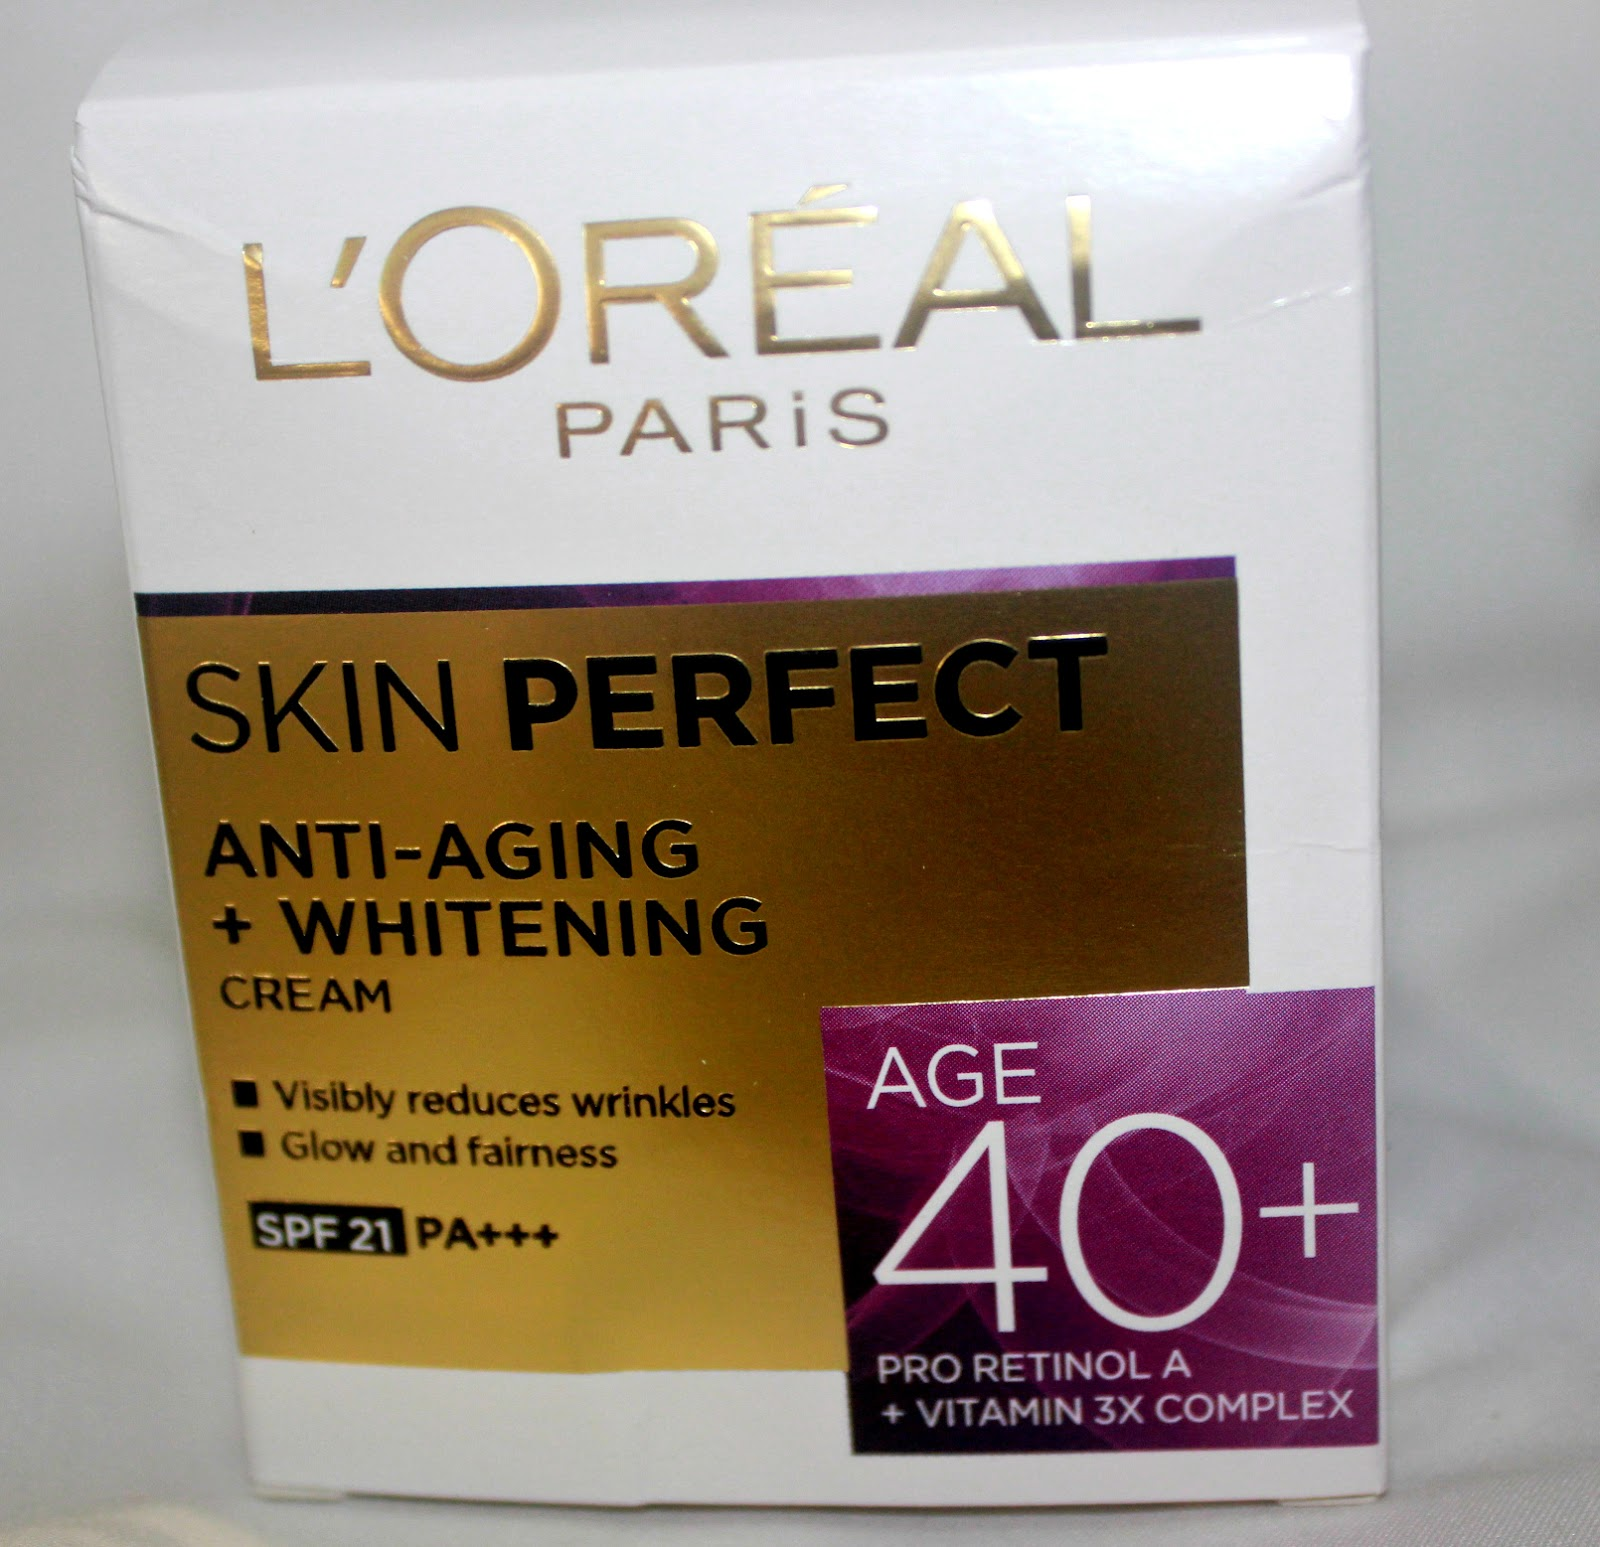 L'Oreal Paris Skin Perfect Anti-Aging + Whitening Cream For Age 40 ...